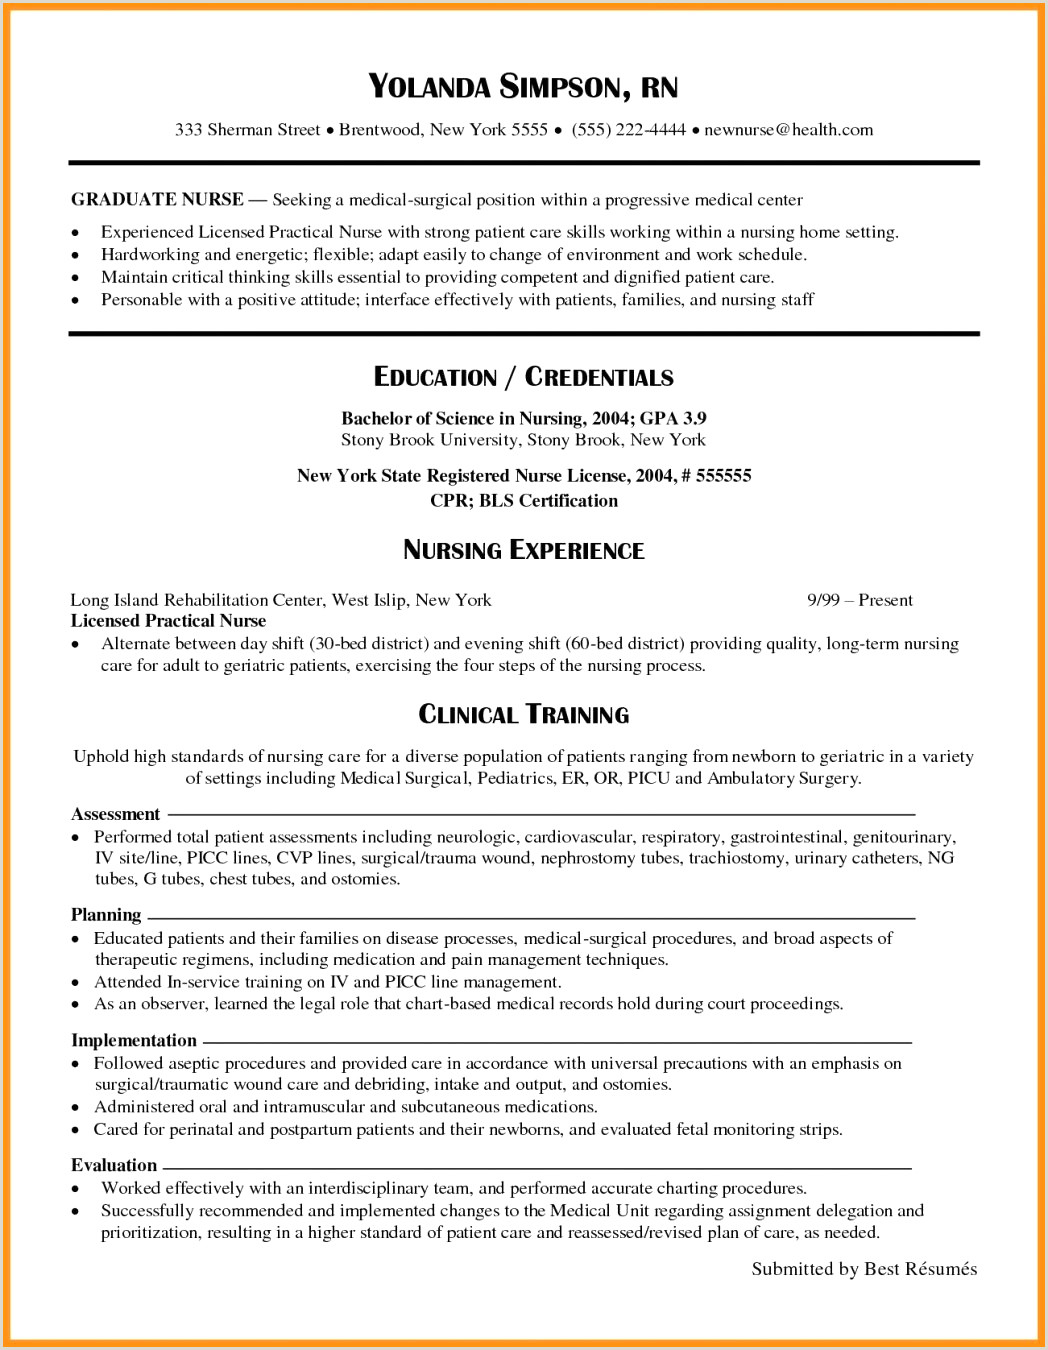 Sample Graduate Nursing Resume 25 Inspirational Gallery Registered Nurse Resume Samples